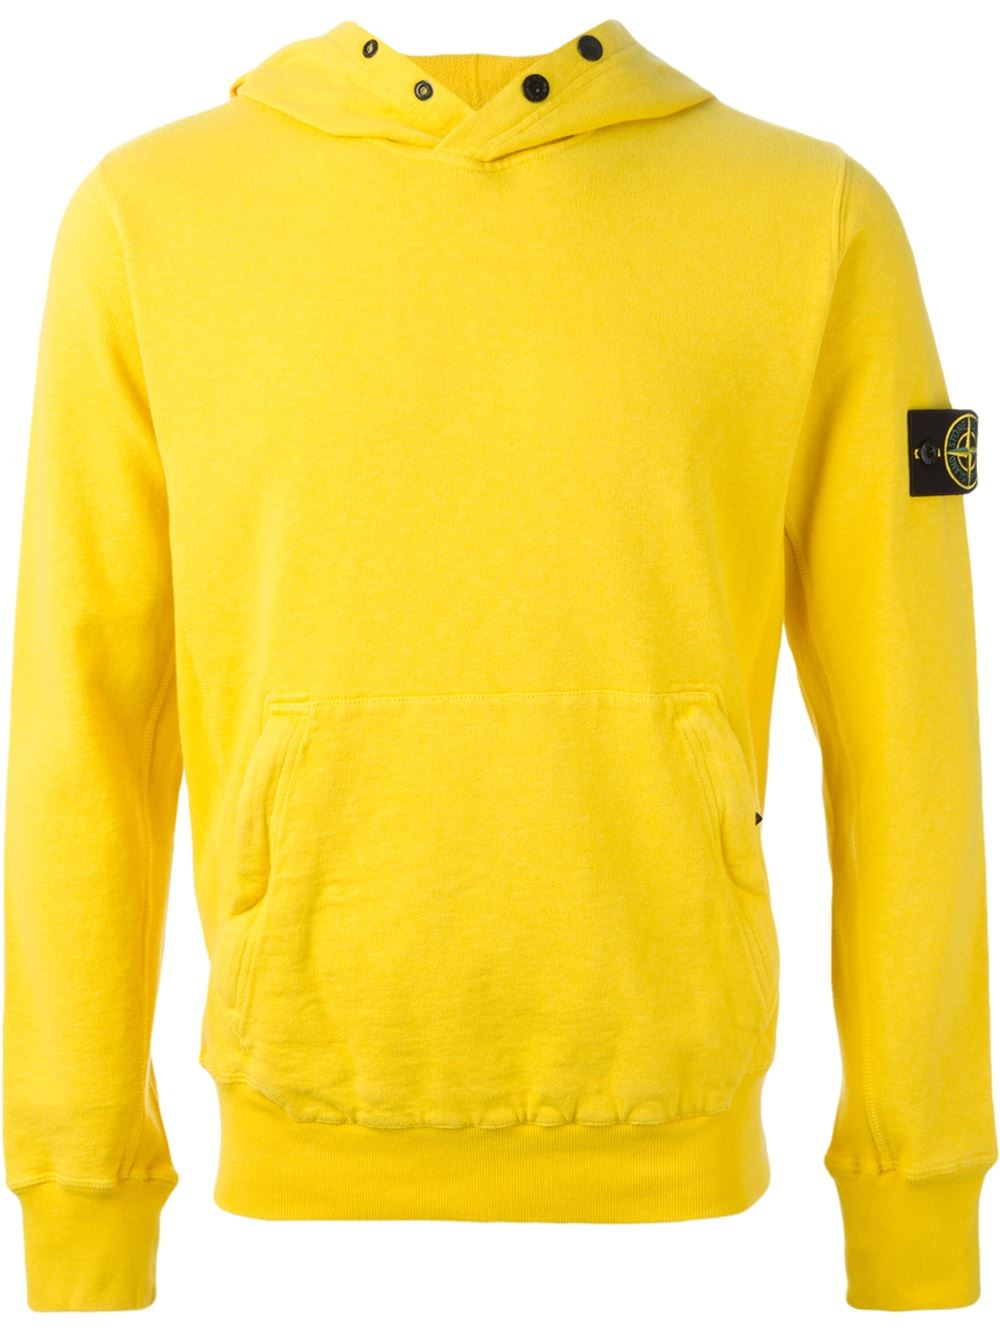 Stone Island Hooded Sweatshirt In Yellow For Men Yellow